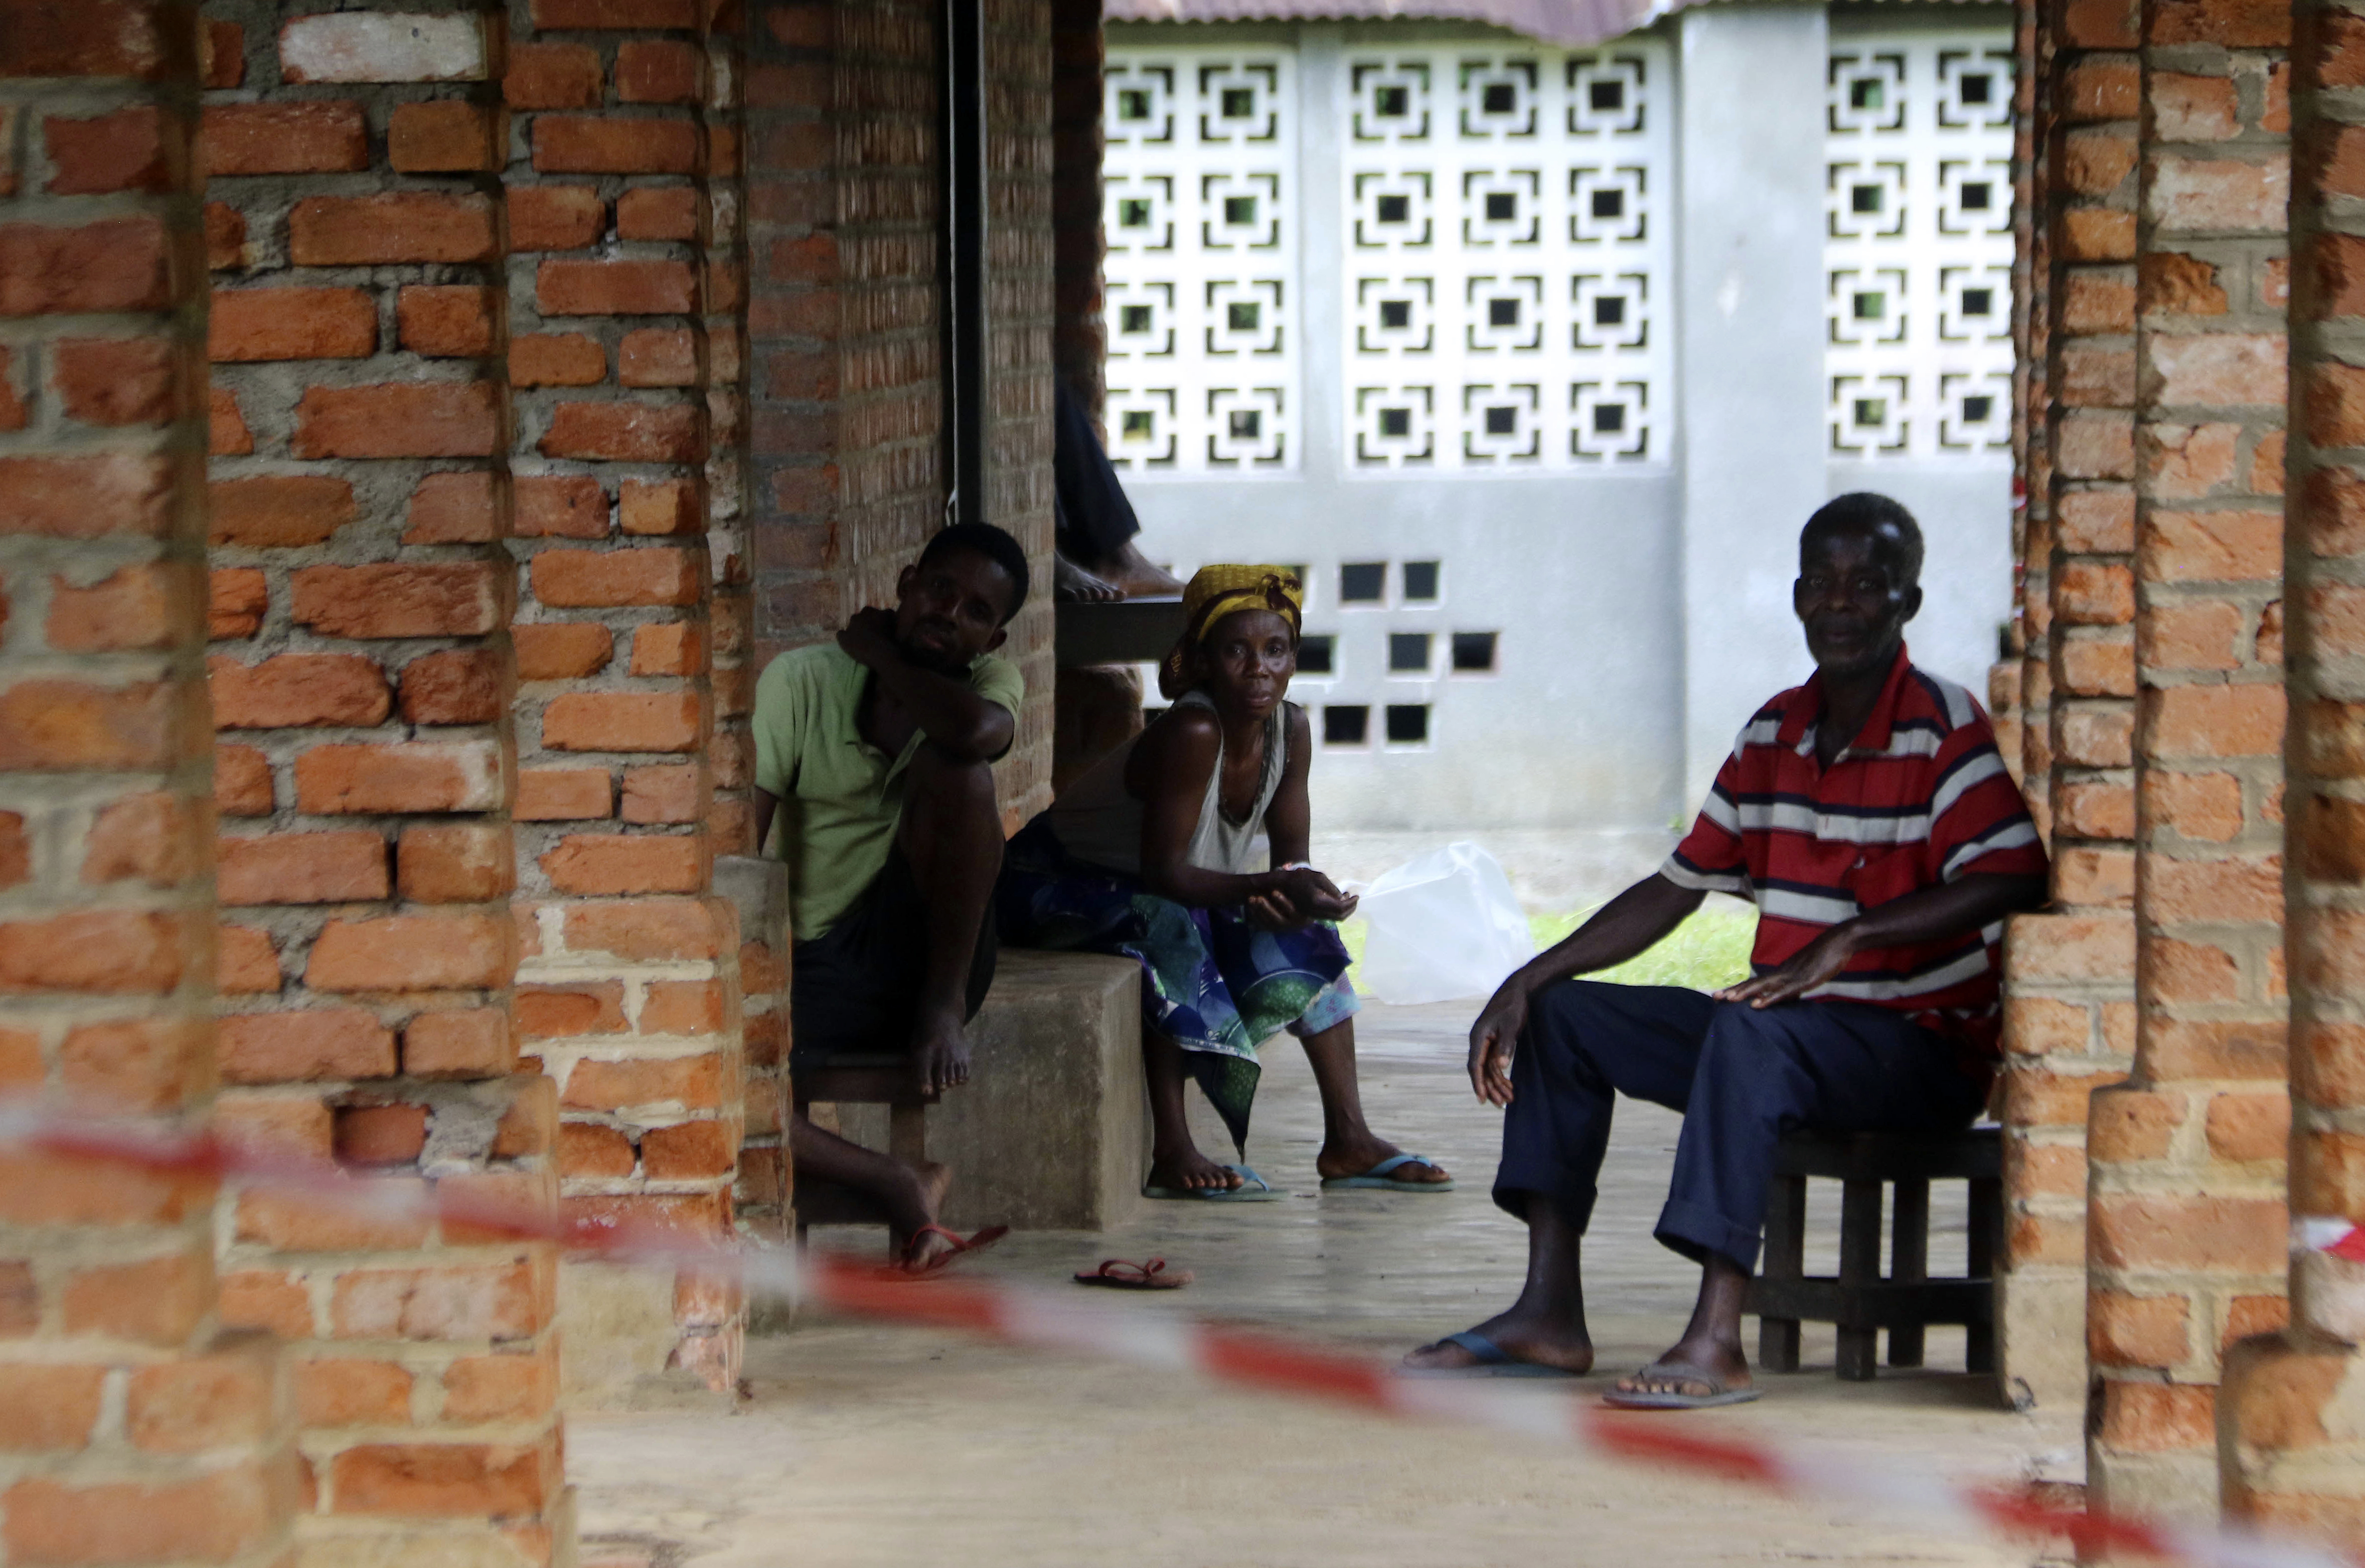 People suspected of having the Ebola virus wait at a treatment center in Bikoro, Democratic Republic of Congo, May 13, 2018. Congo's latest Ebola outbreak has spread to a city of more than 1 million people, a worrying shift as the deadly virus risks ...